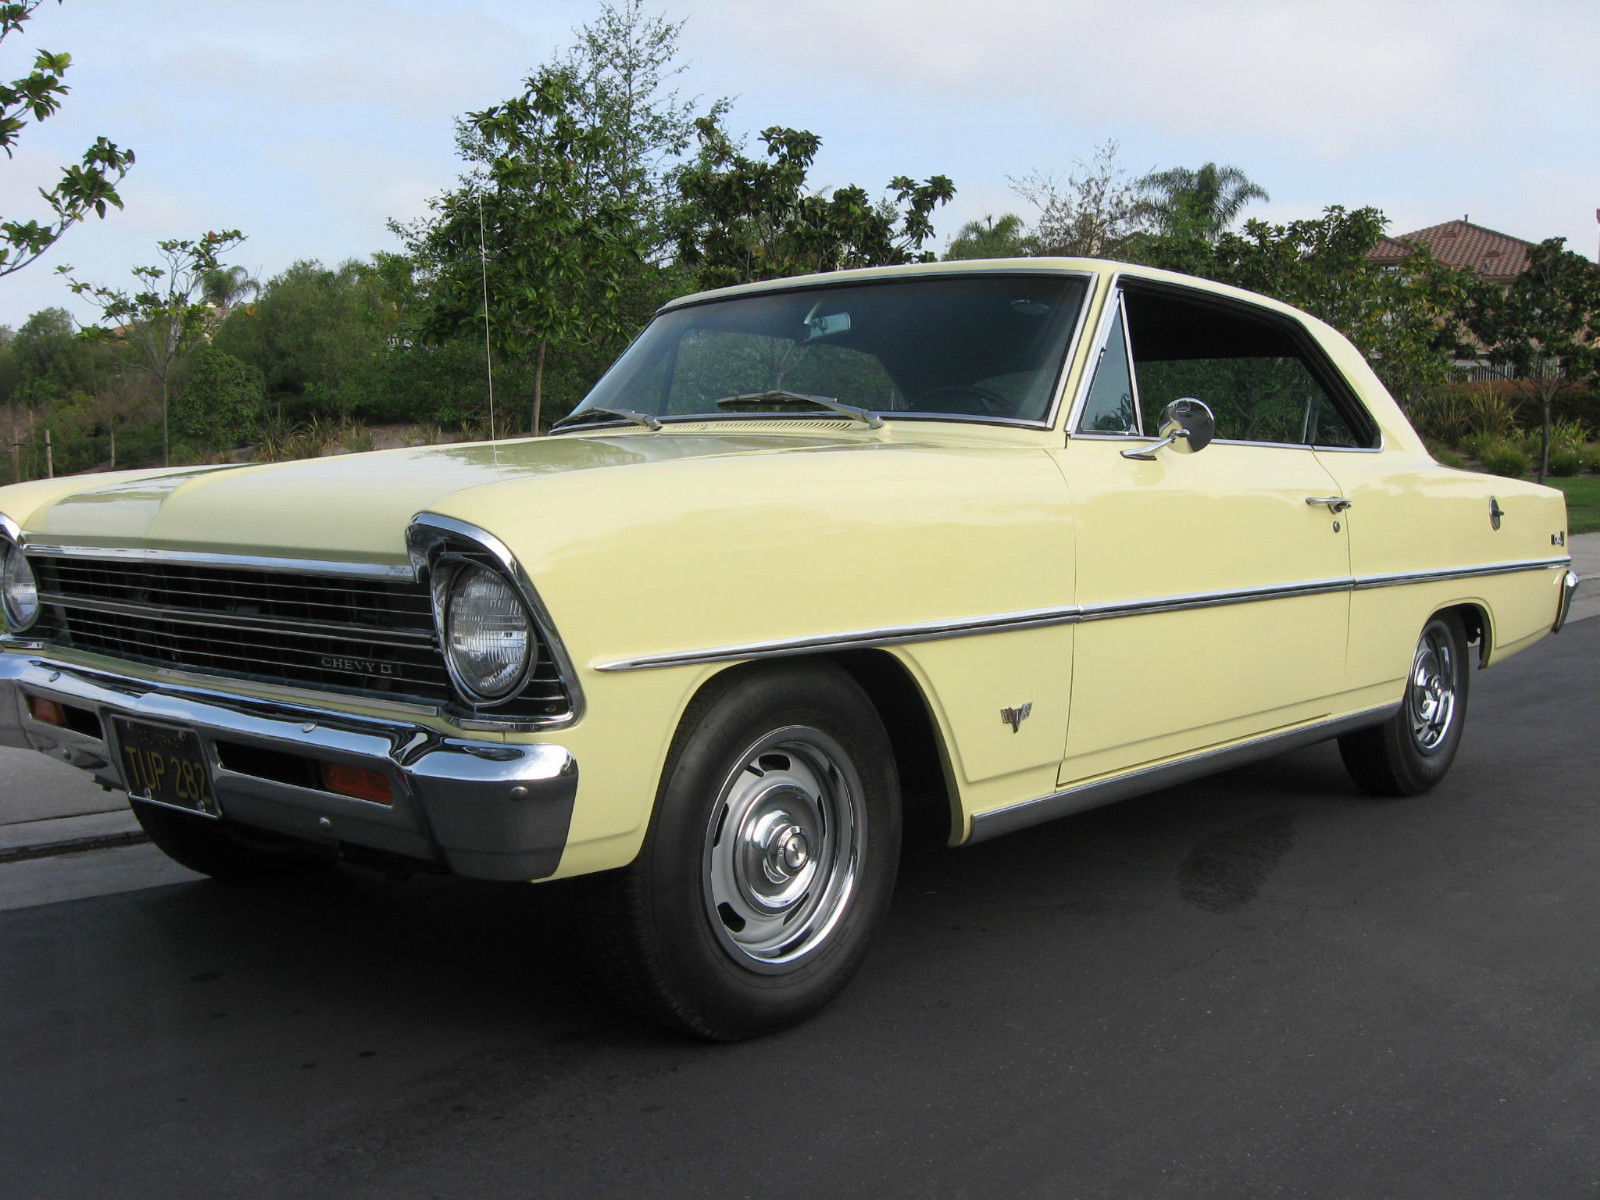 1967 chevrolet chevy ii nova sport coupe project cars for sale. Black Bedroom Furniture Sets. Home Design Ideas